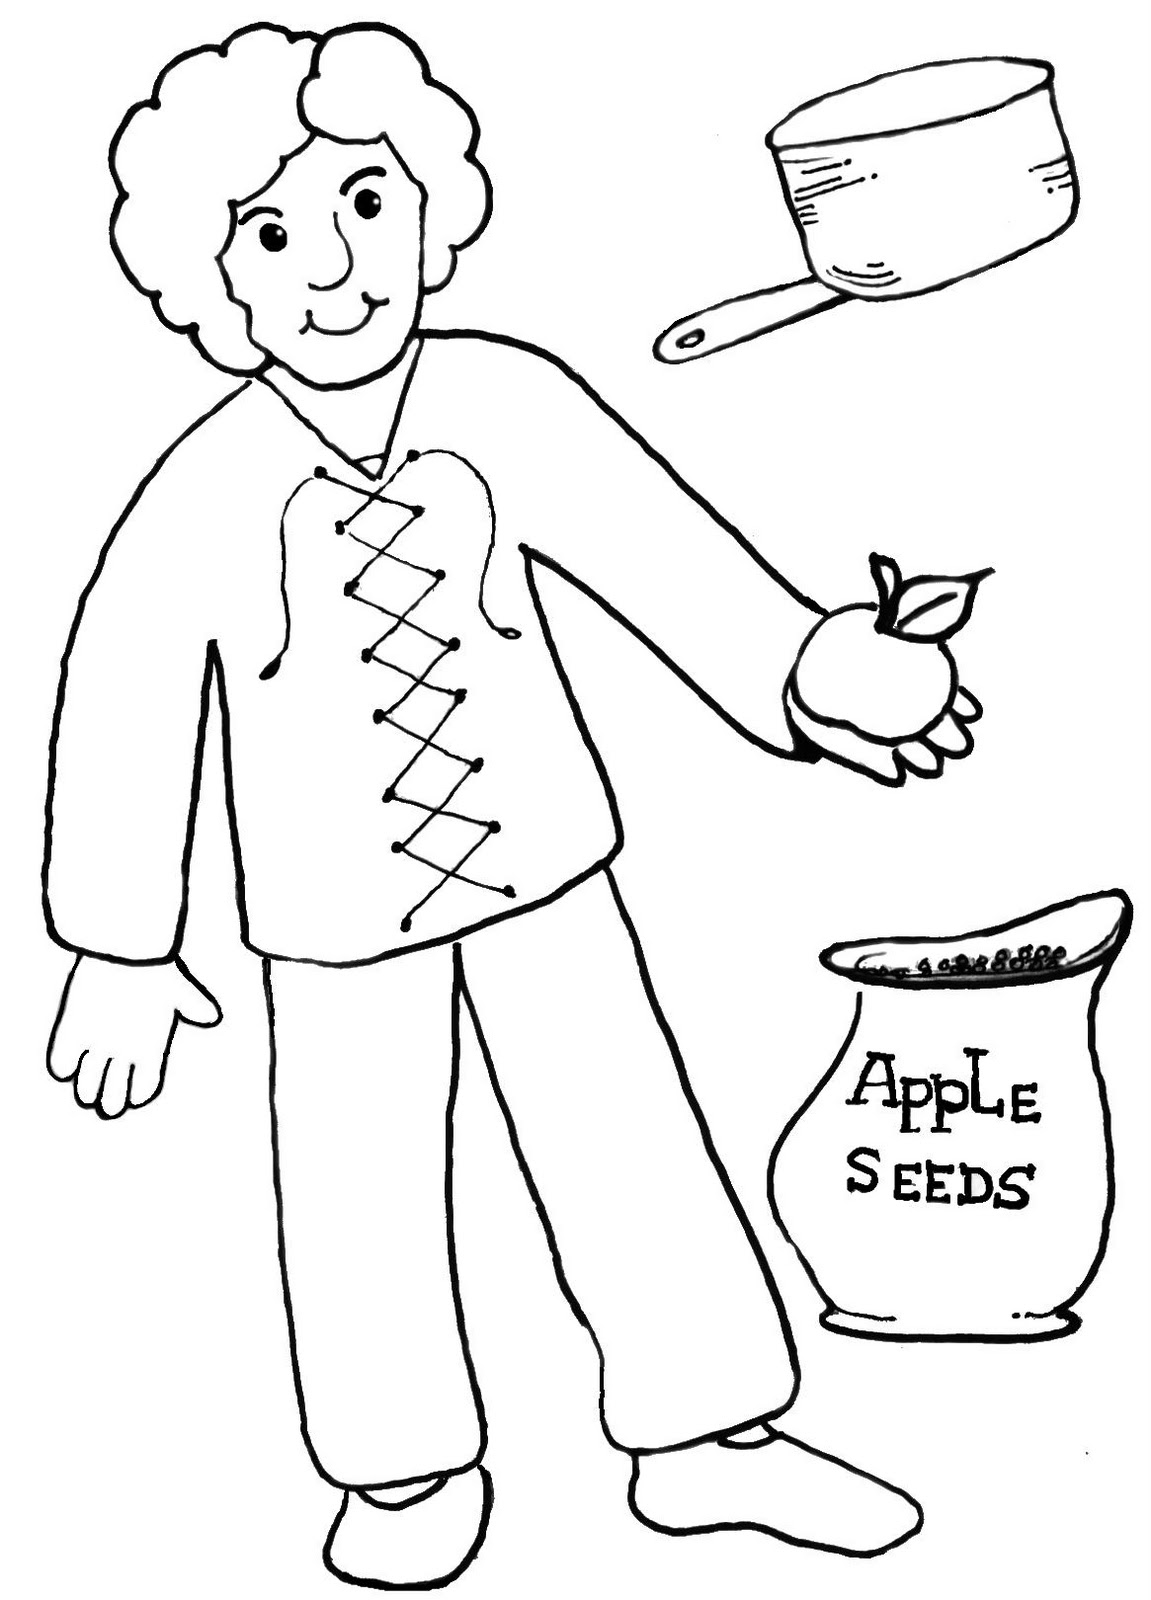 photo about Johnny Appleseed Printable Story identify Johnny Appleseed Coloring Webpages - Most straightforward Coloring Webpages For Children